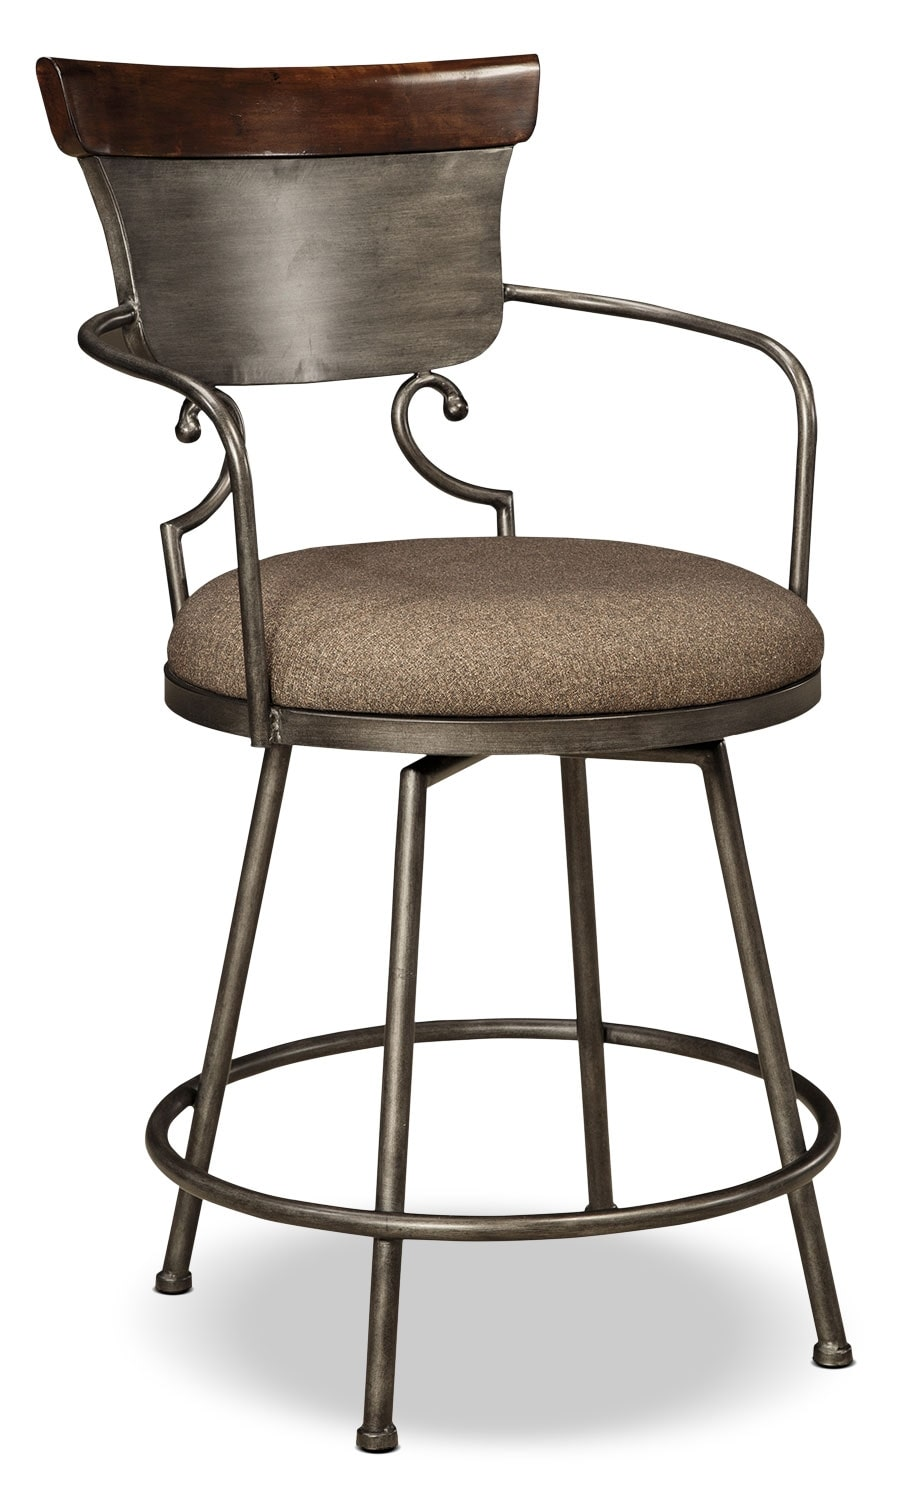 Moriann metal counter height stool dark brown the brick - Aluminum counter height stools ...